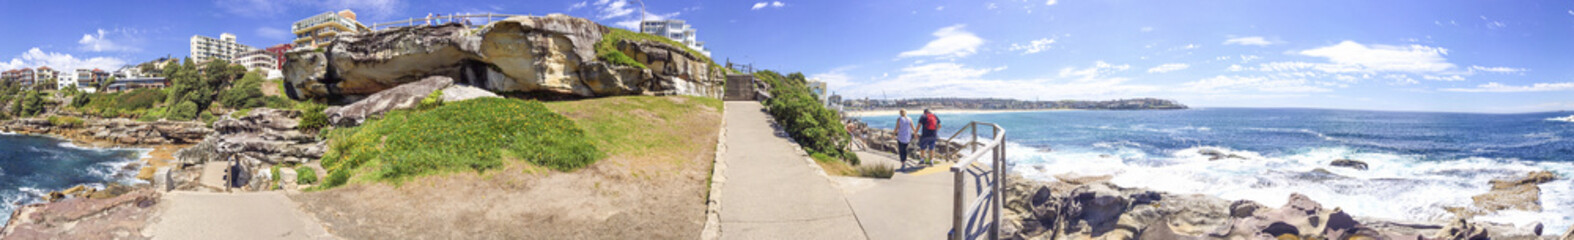 BONDI BEACH, AUSTRALIA - NOVEMBER 2015: Panoramic view of famous beach. This is a major attraction in Sydney